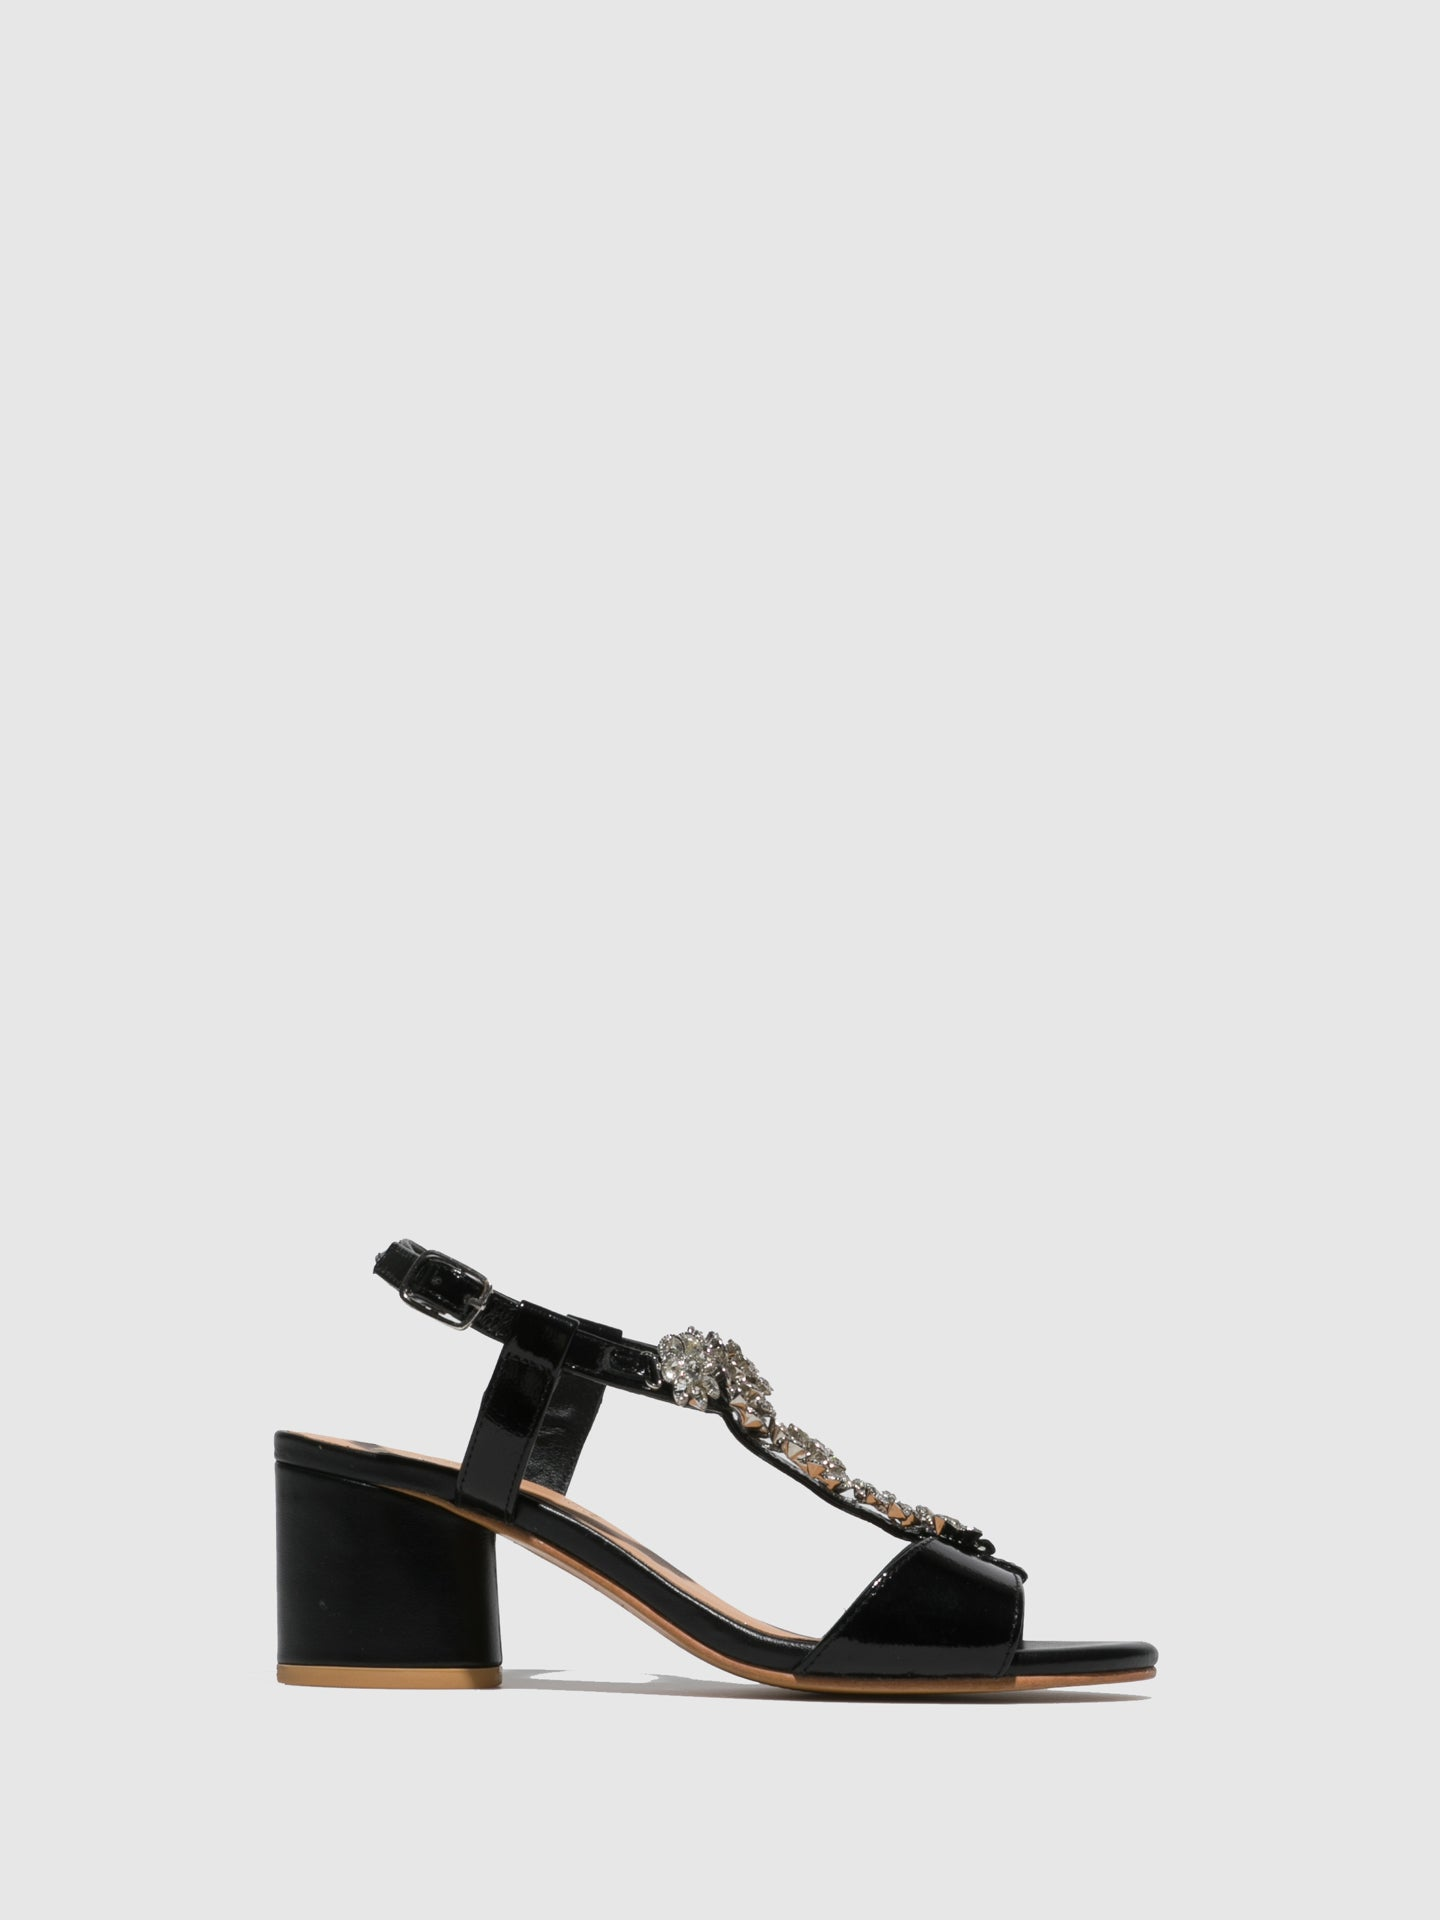 Parodi Sunshine Black Appliqués Sandals